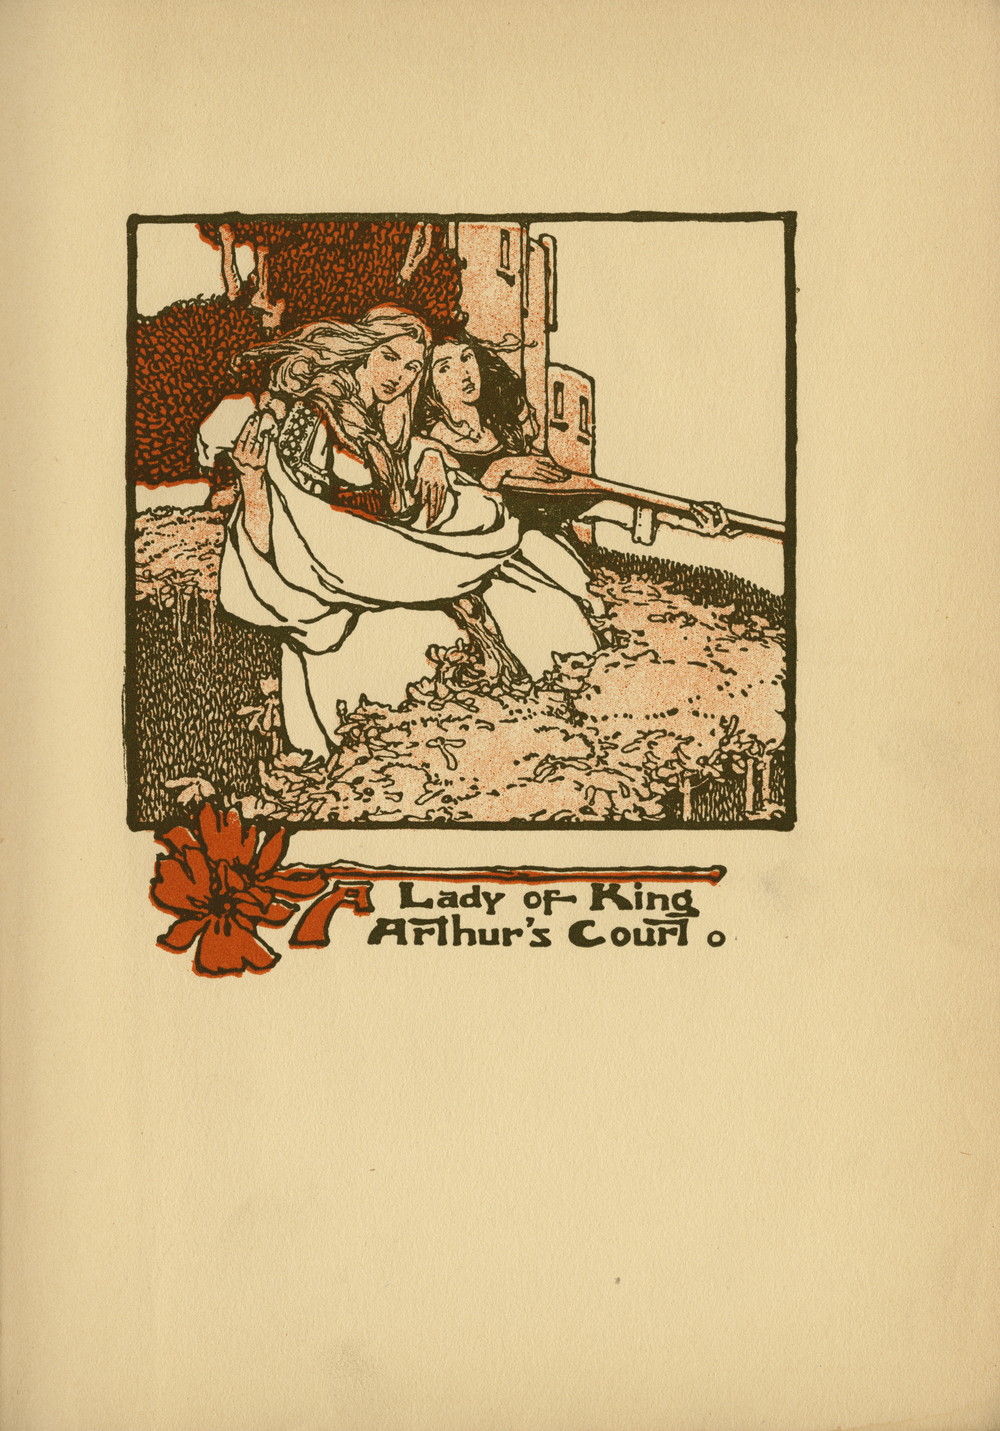 Clara Elsene Peck. A Lady of King Arthur's Court. Written by Sara Hawks Sterling. Frontispiece. 1907.